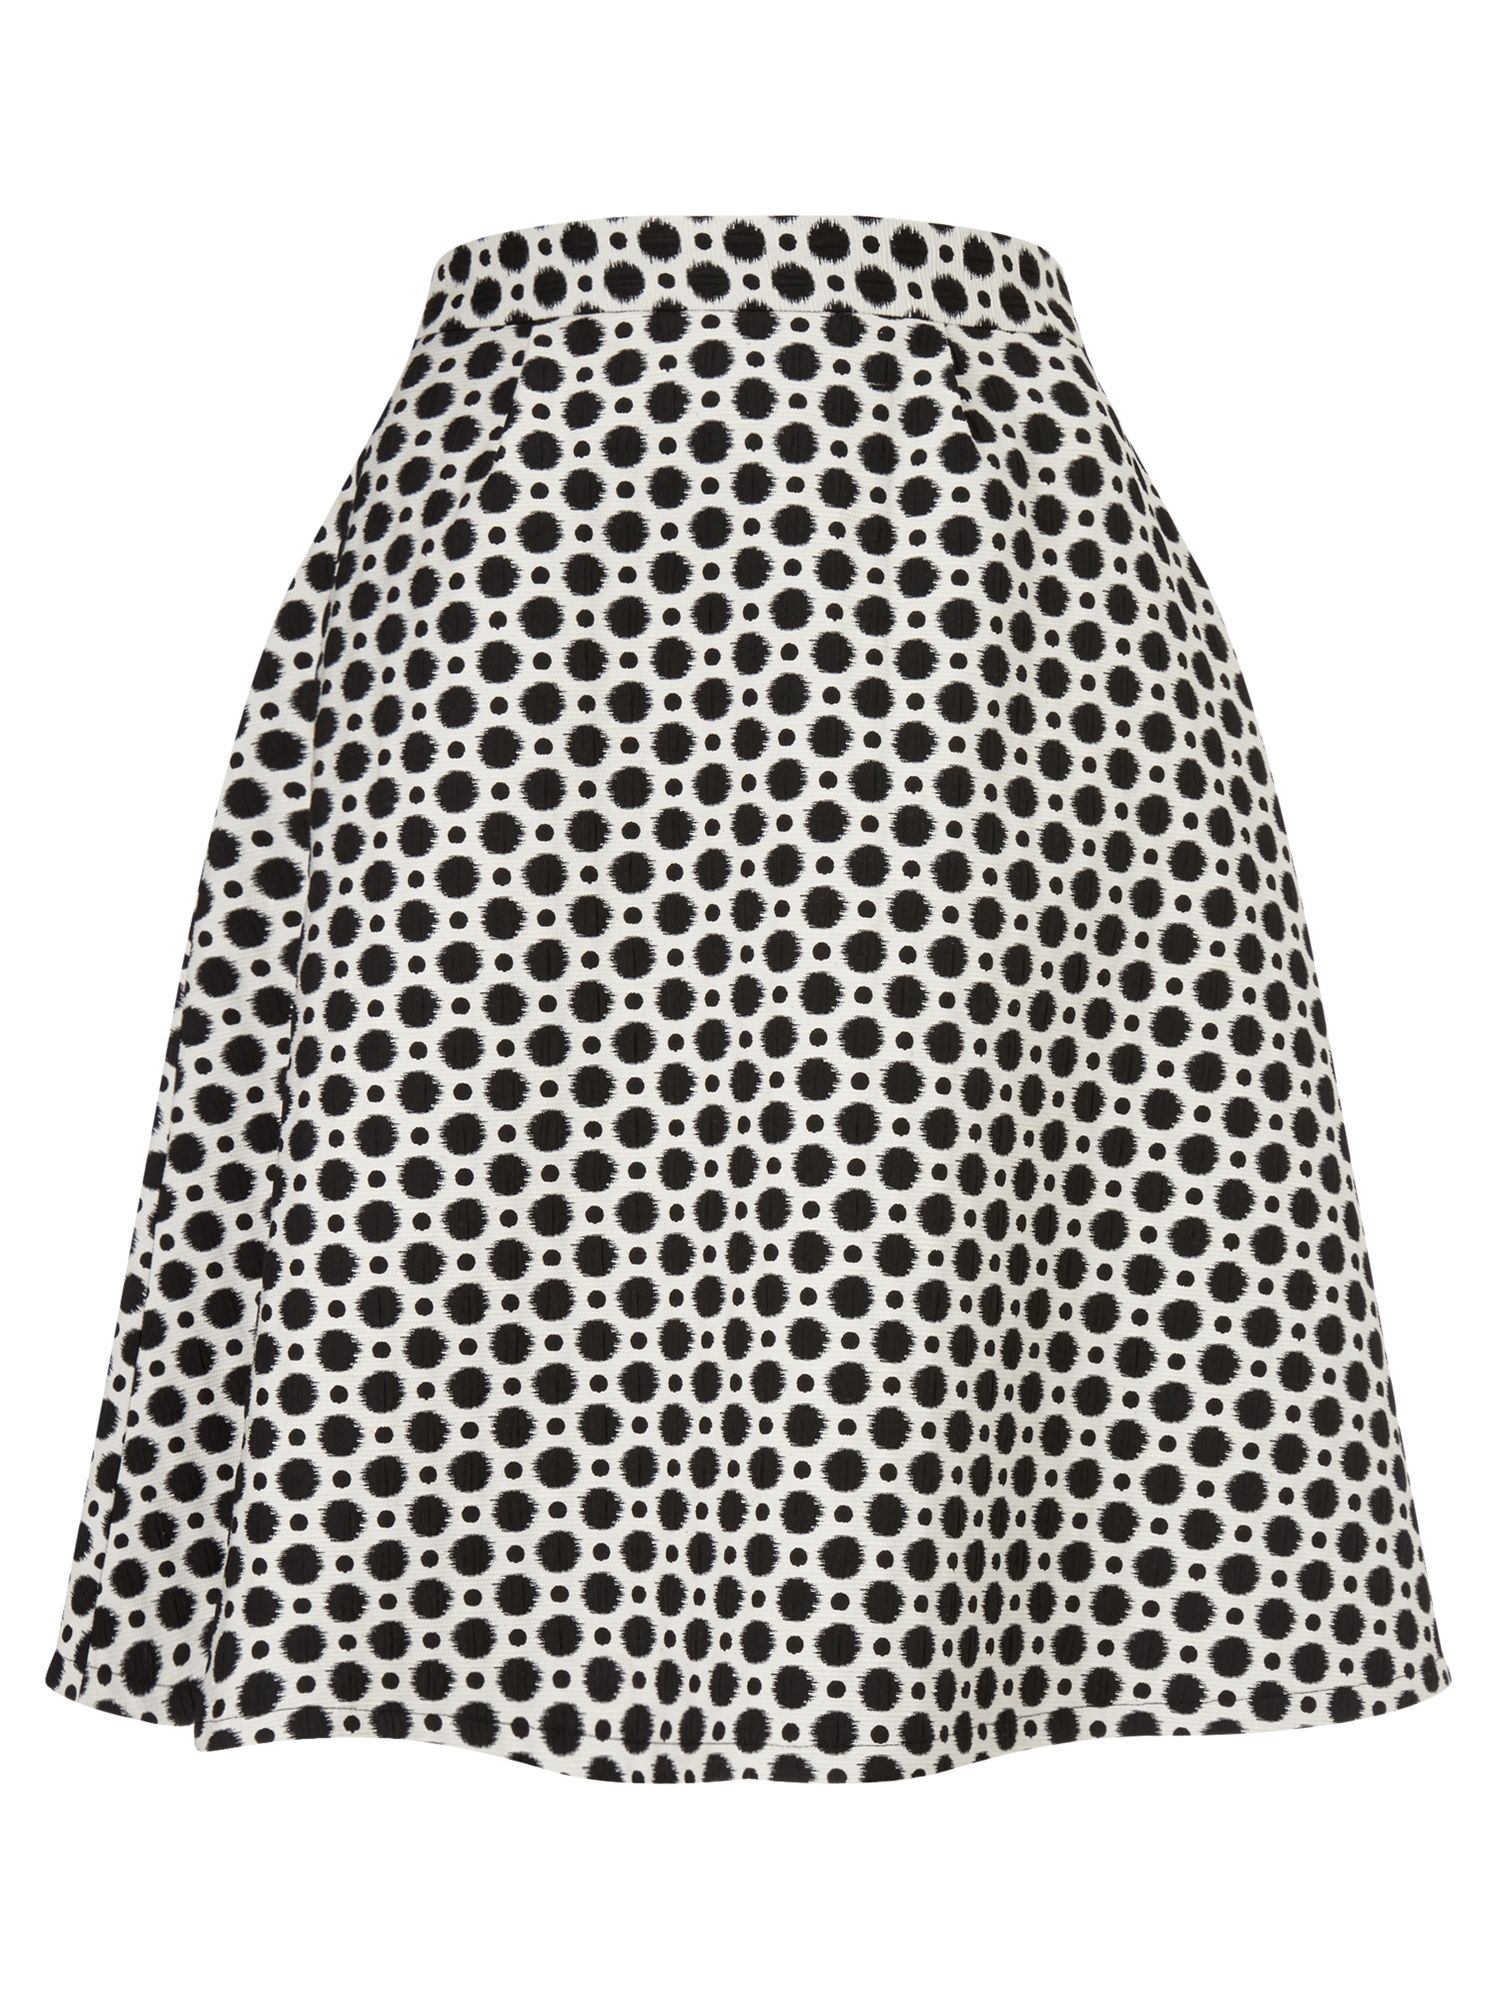 Studio 8 Persia Skirt, Black